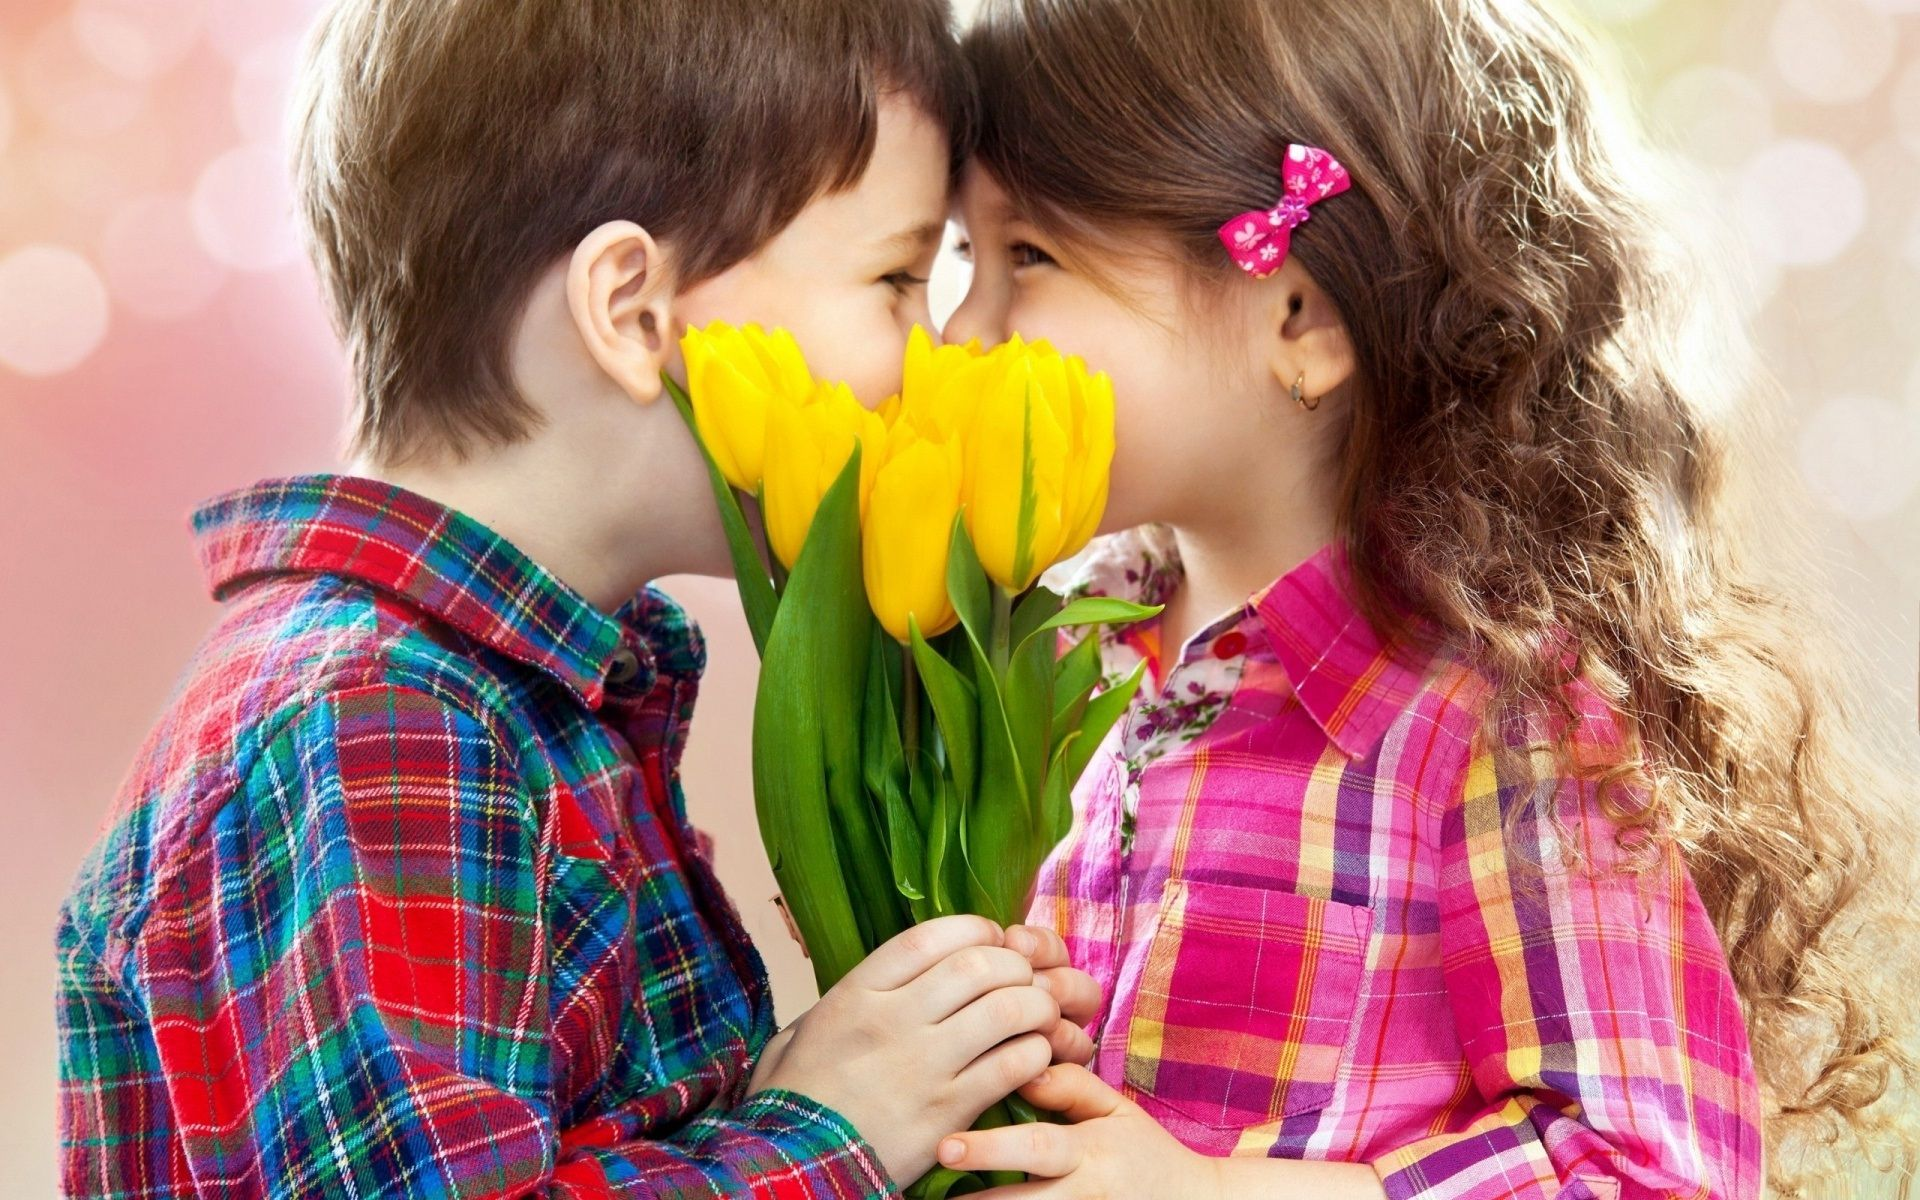 Sweet Love couple Kiss Wallpaper : Baby couple Wallpaper Widescreen cute Wallpapers Pinterest More couple wallpaper and ...